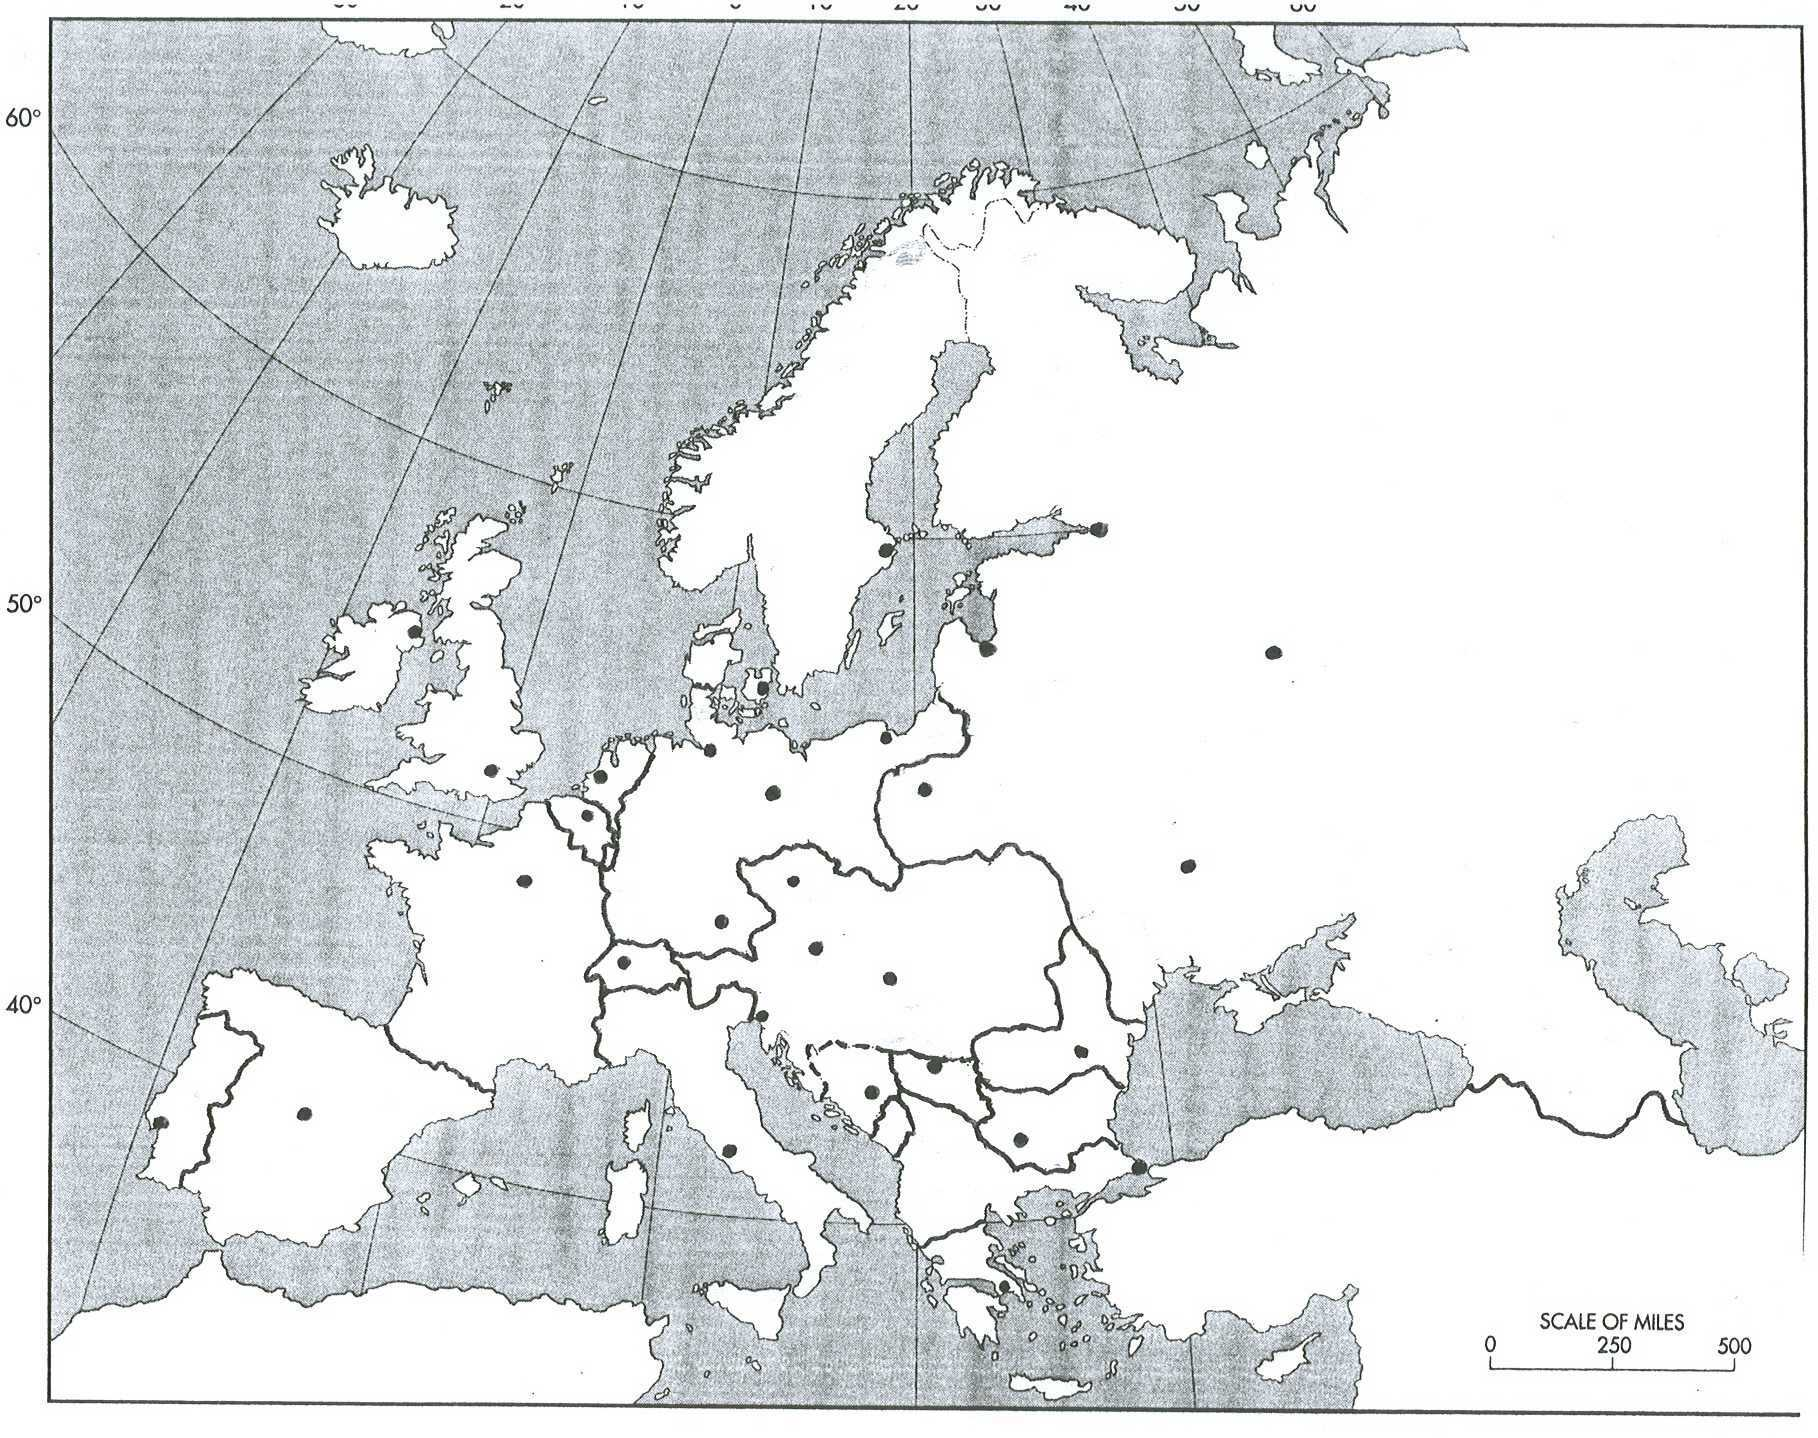 Europe after World War 1 Map Worksheet Answers or World War Ii Blank Map Of Europe Copy World War 2 Map Europe